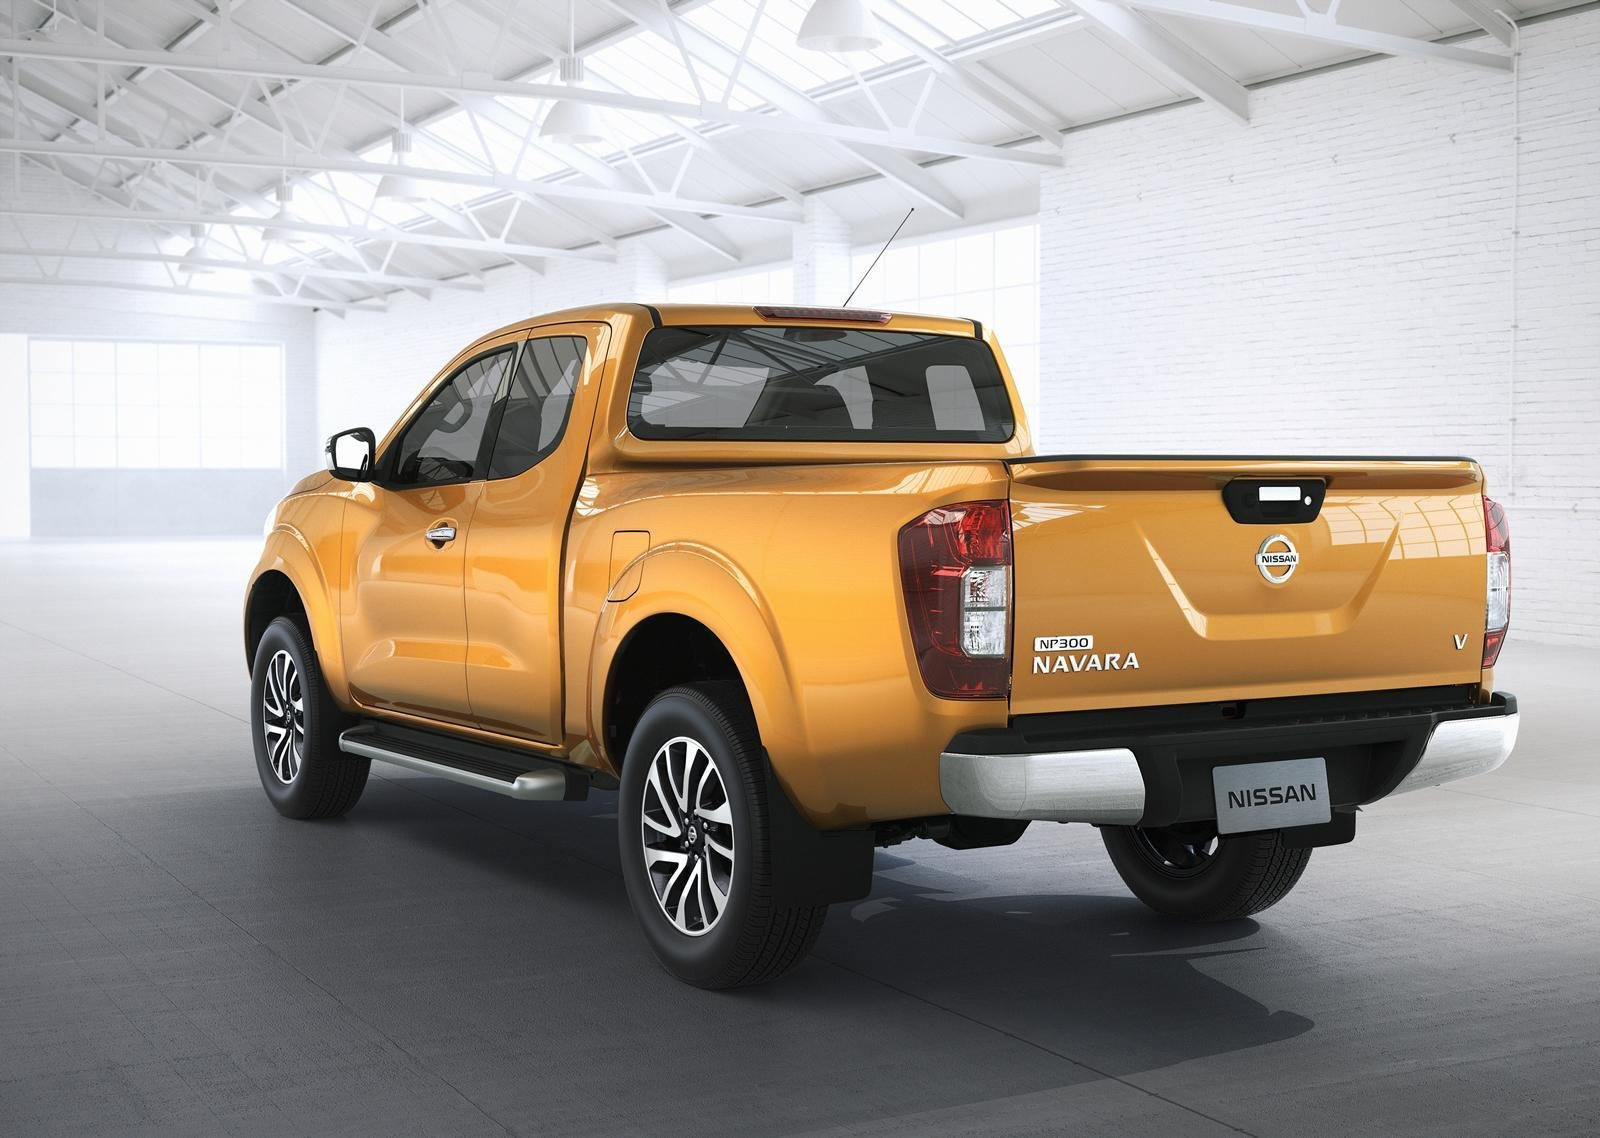 2015 nissan np300 navara picture 555685 car review top speed. Black Bedroom Furniture Sets. Home Design Ideas